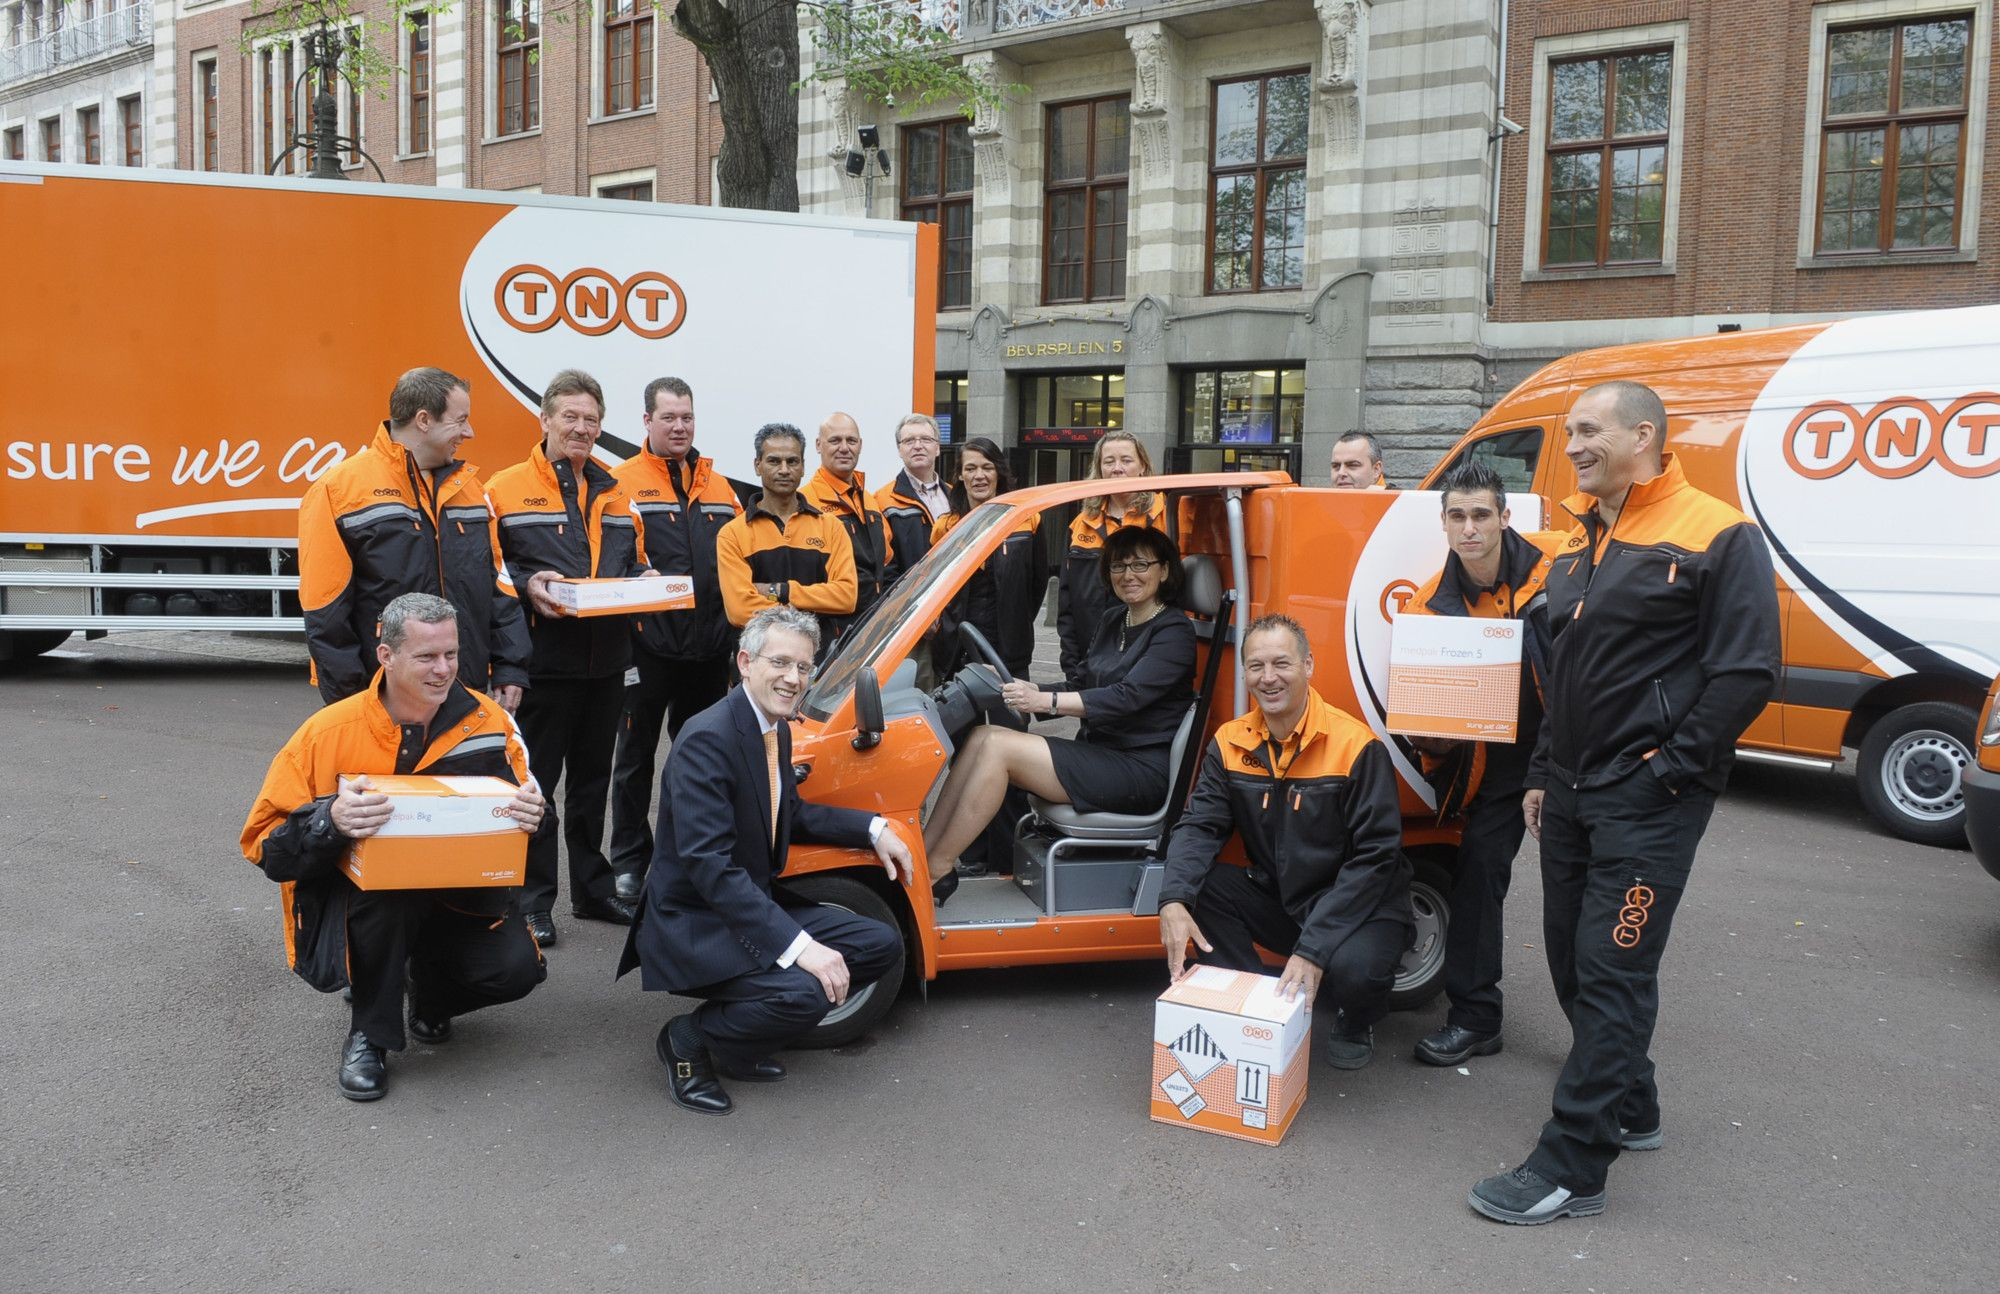 Tnt Delivery Team A Range Of Delivery Vehicles Motor